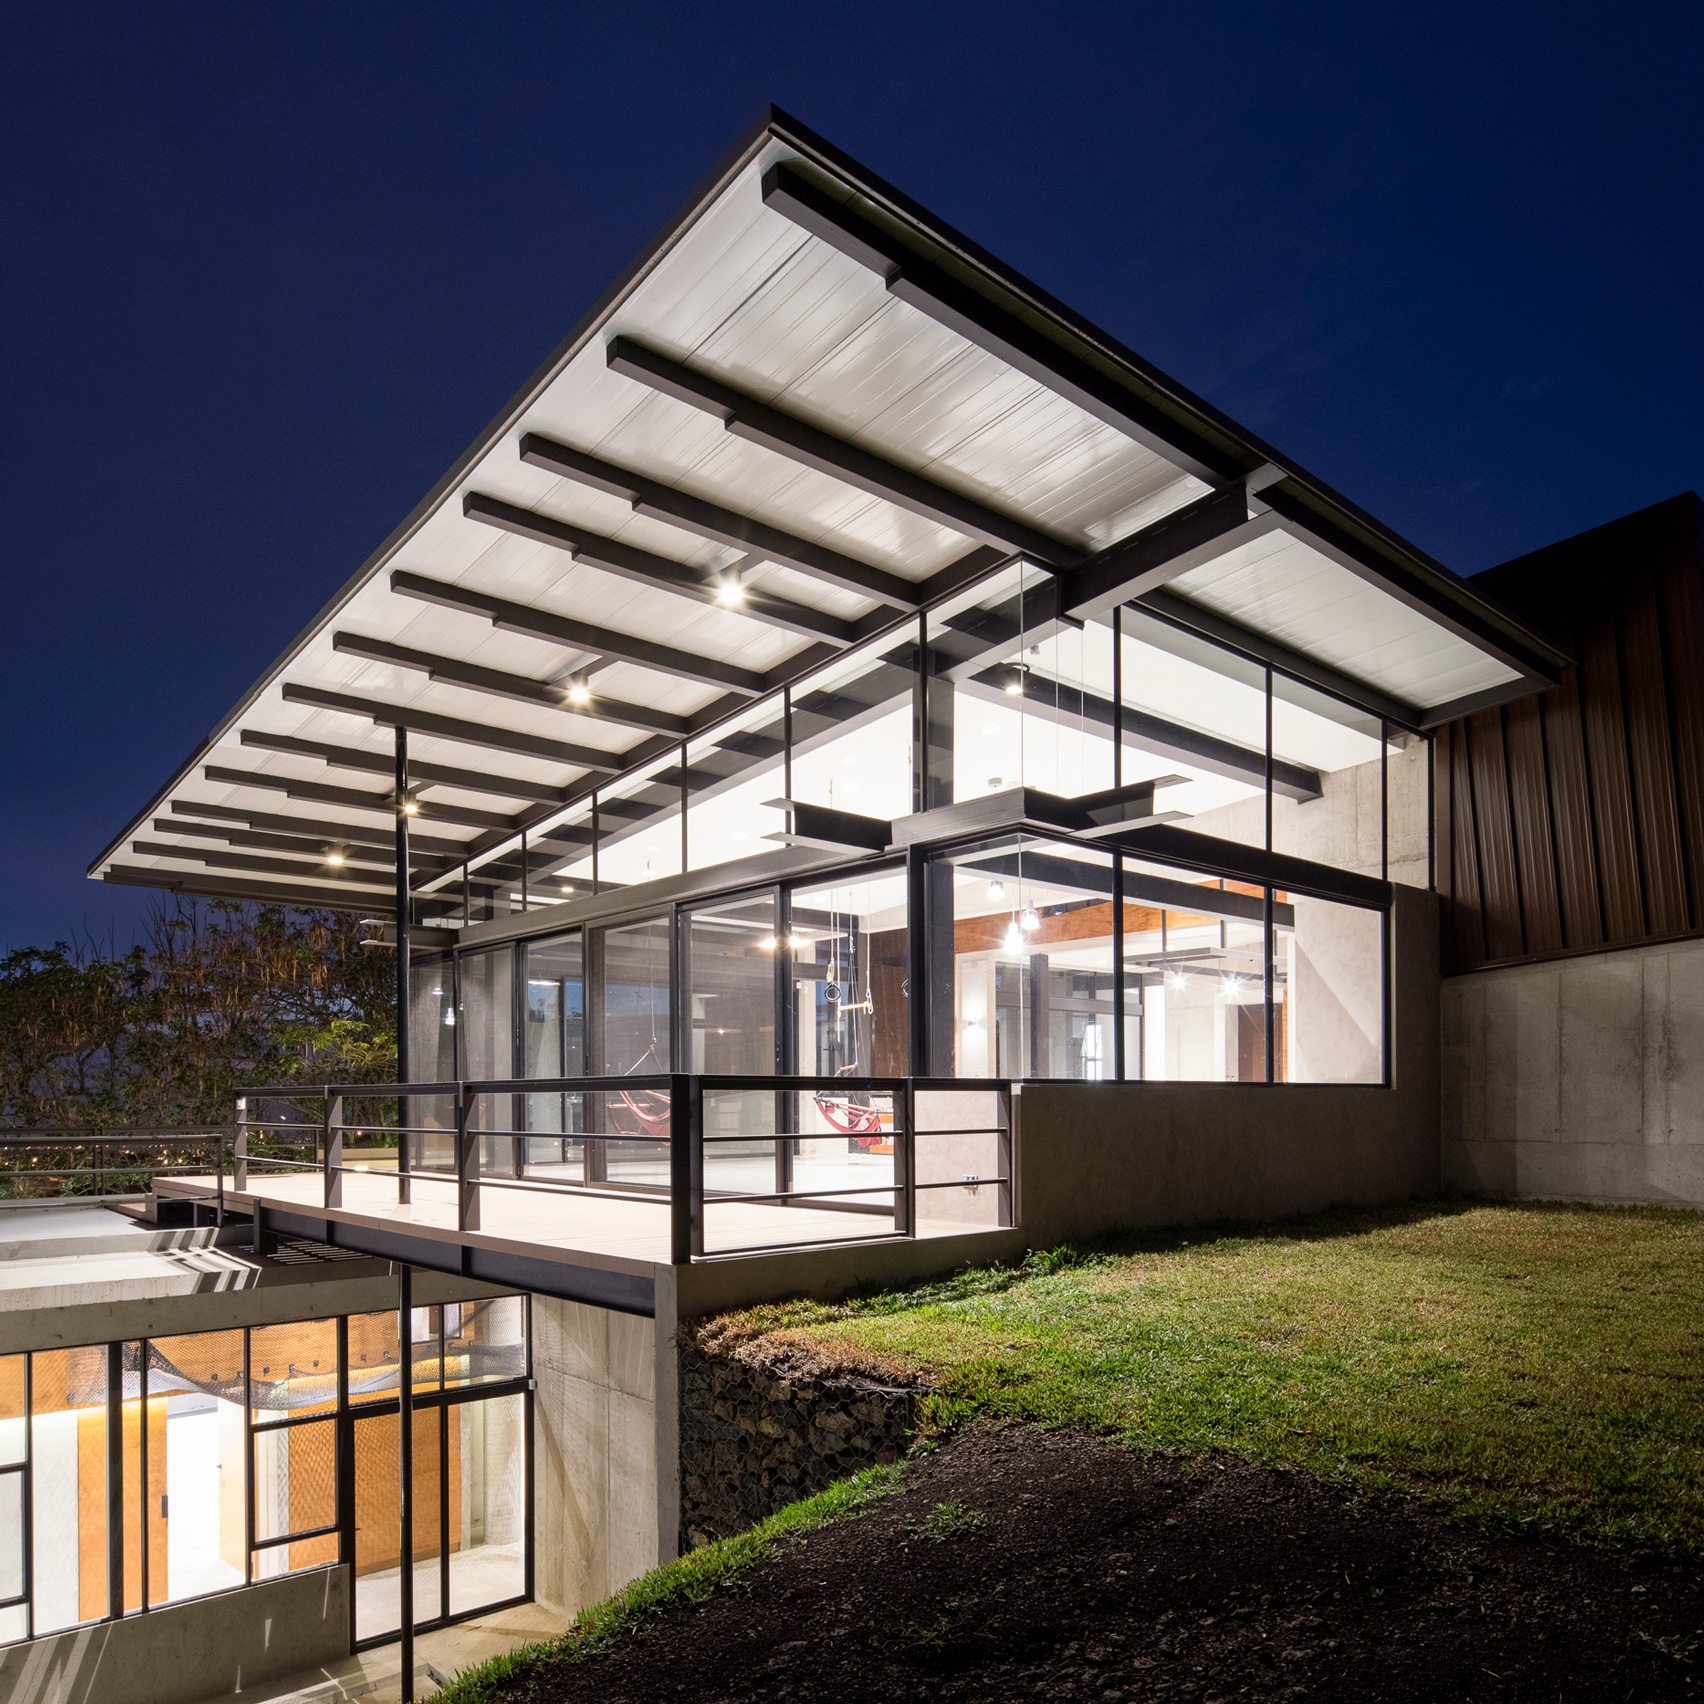 Murray Music House by Carazo Arquitectura